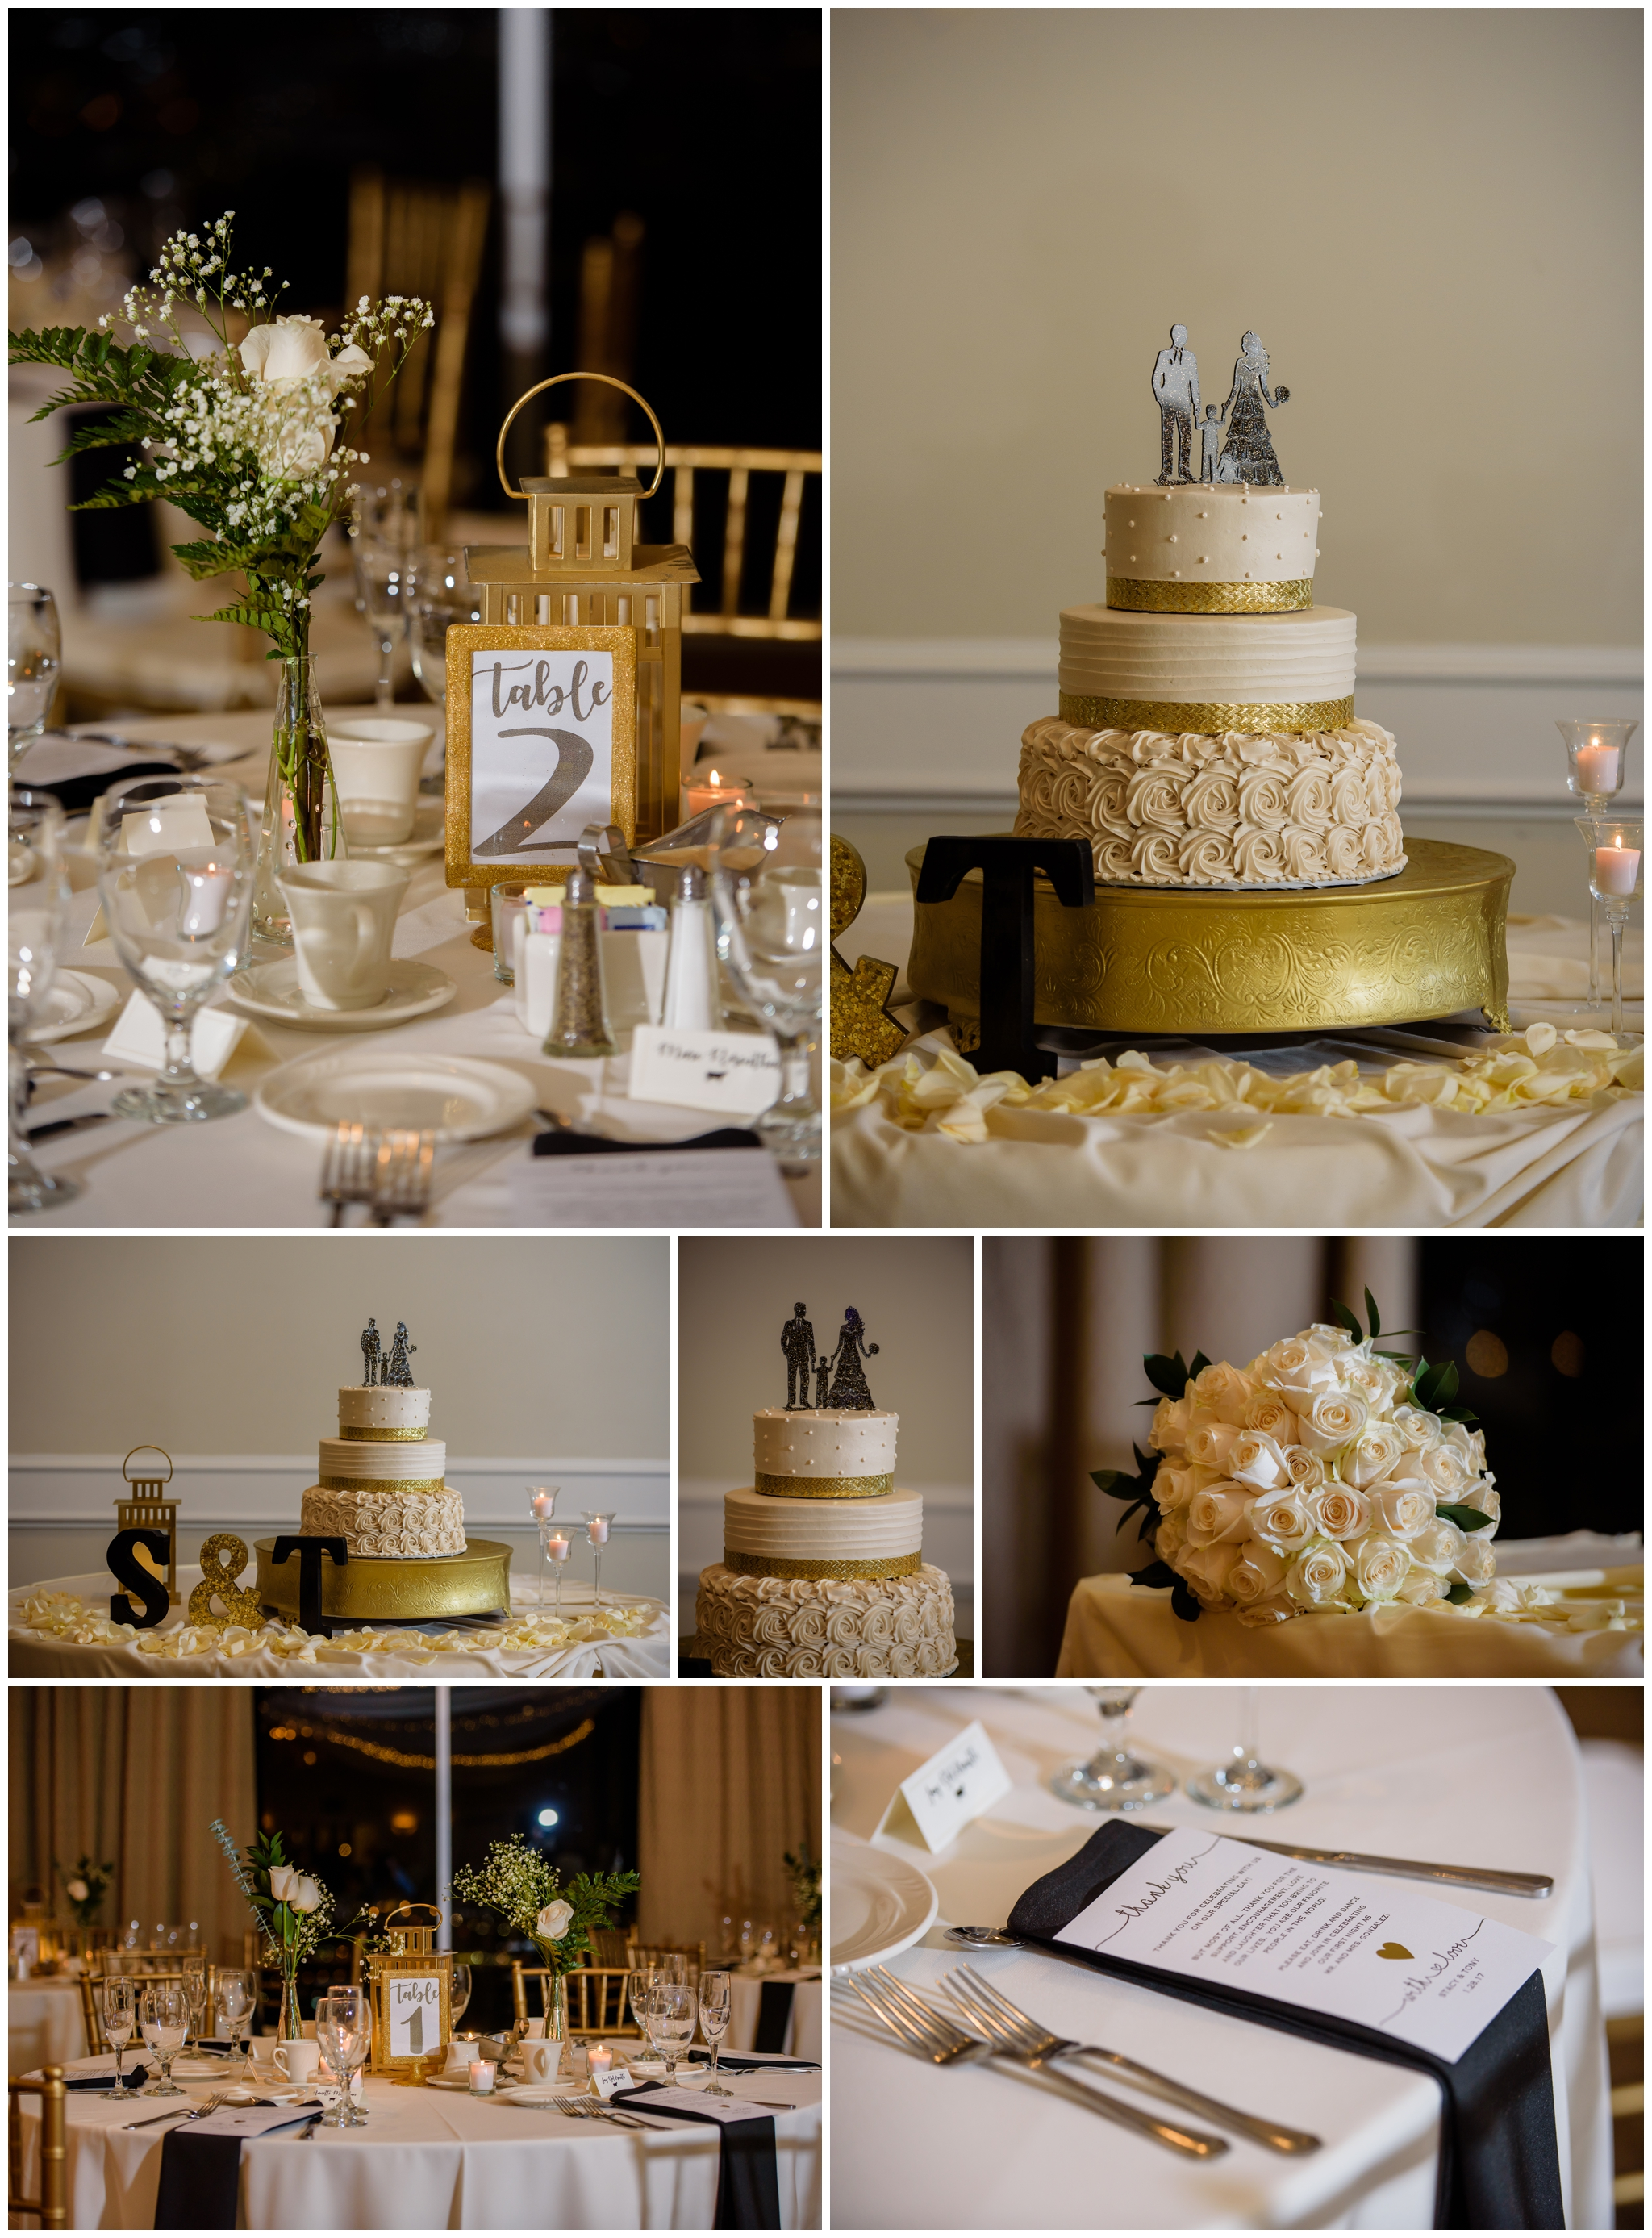 The very first thing I do is get into the reception area, set up my lights and take the detail shots. Even if people are already sitting down there has to be a table or two that are free. Oh and doesn't that cake look amazing!